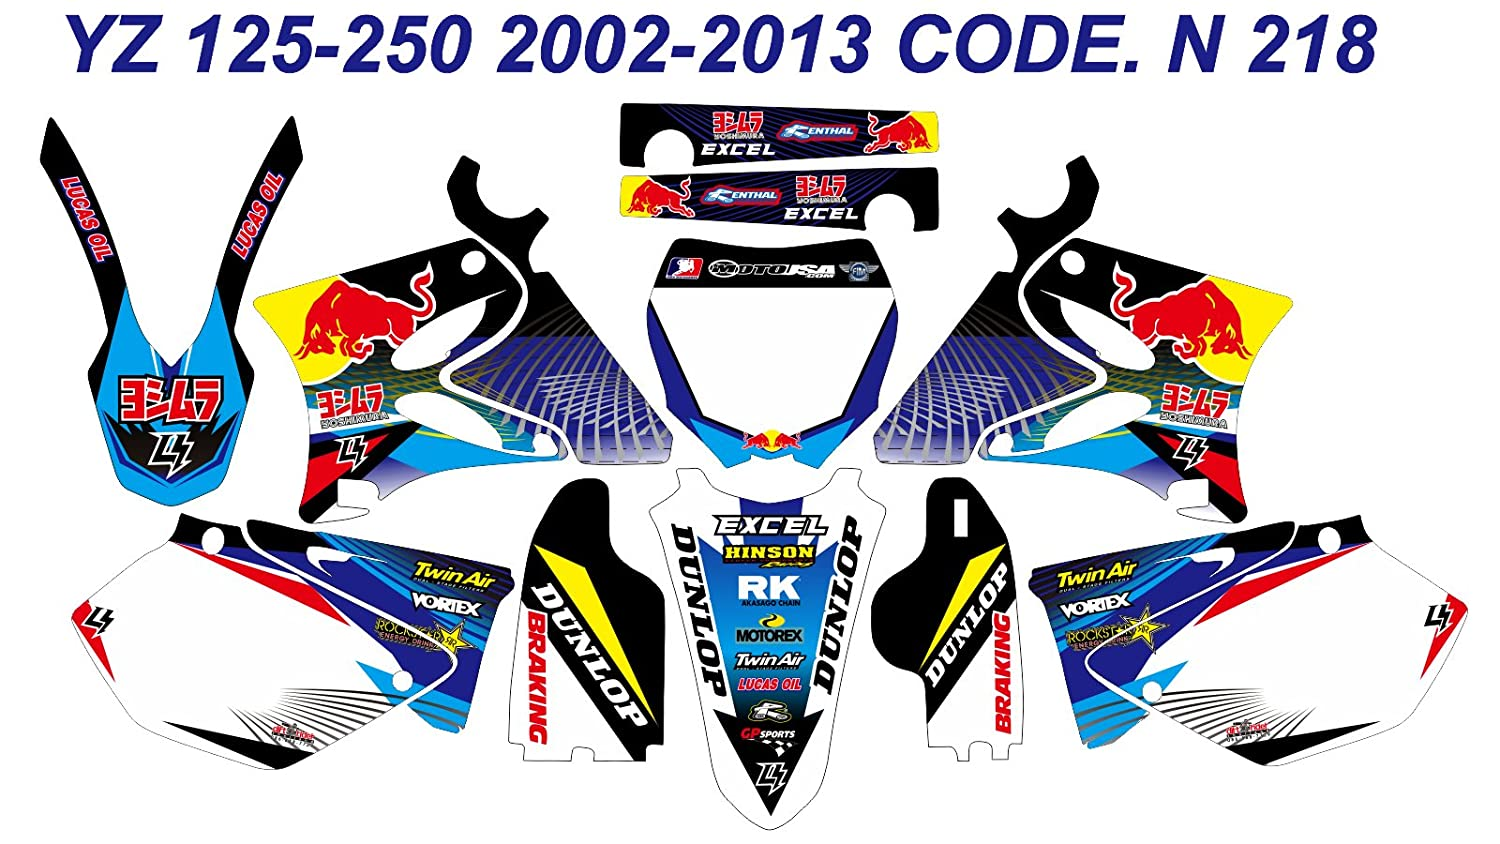 N 218 YAMAHA YZ125 YZ250 2002-2013 02-13 DECALS STICKERS GRAPHICS KIT